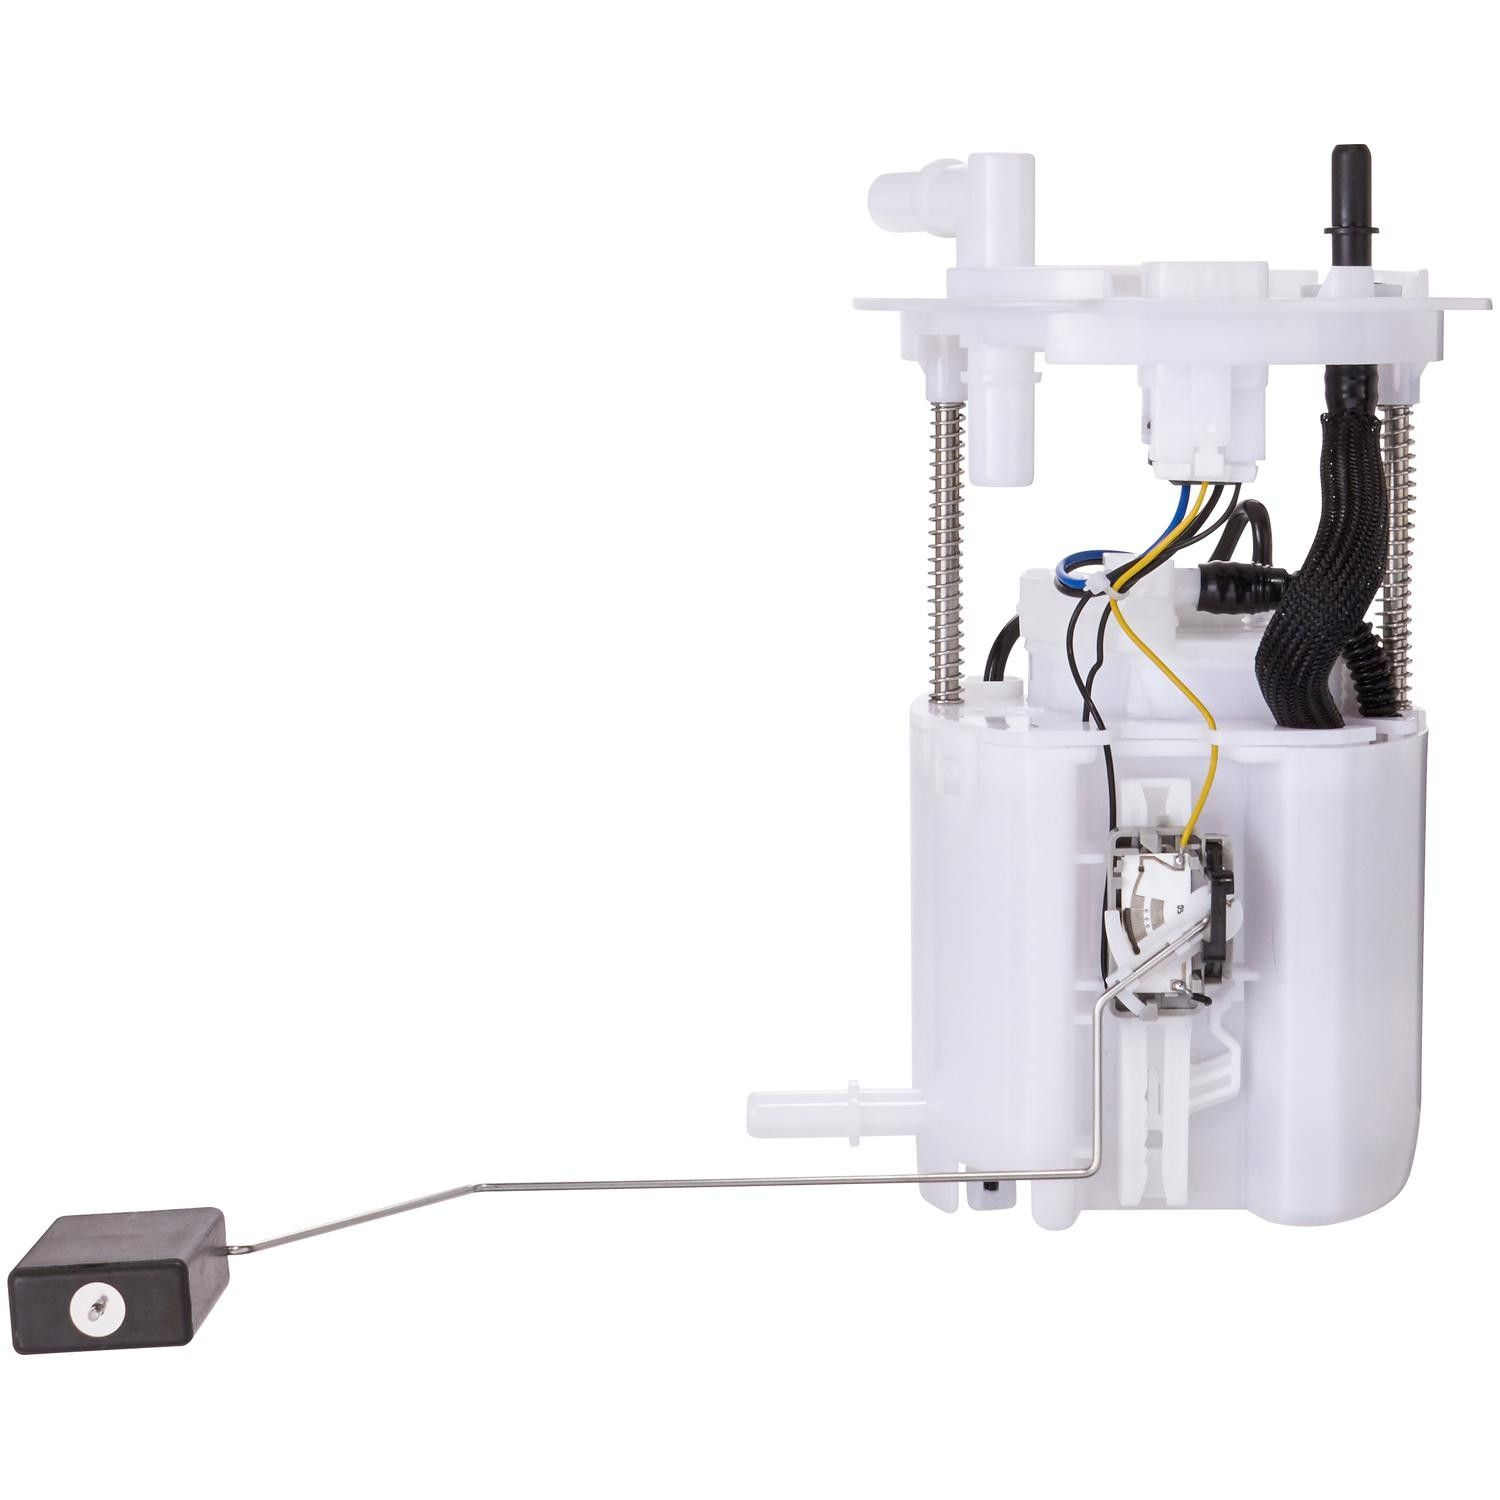 Ford Explorer Fuel Pump Module Assembly Replacement Airtex 1994 Wiring 2013 Primary 4 Cyl 20l Spectra Sp2512m Internal Strainer Included